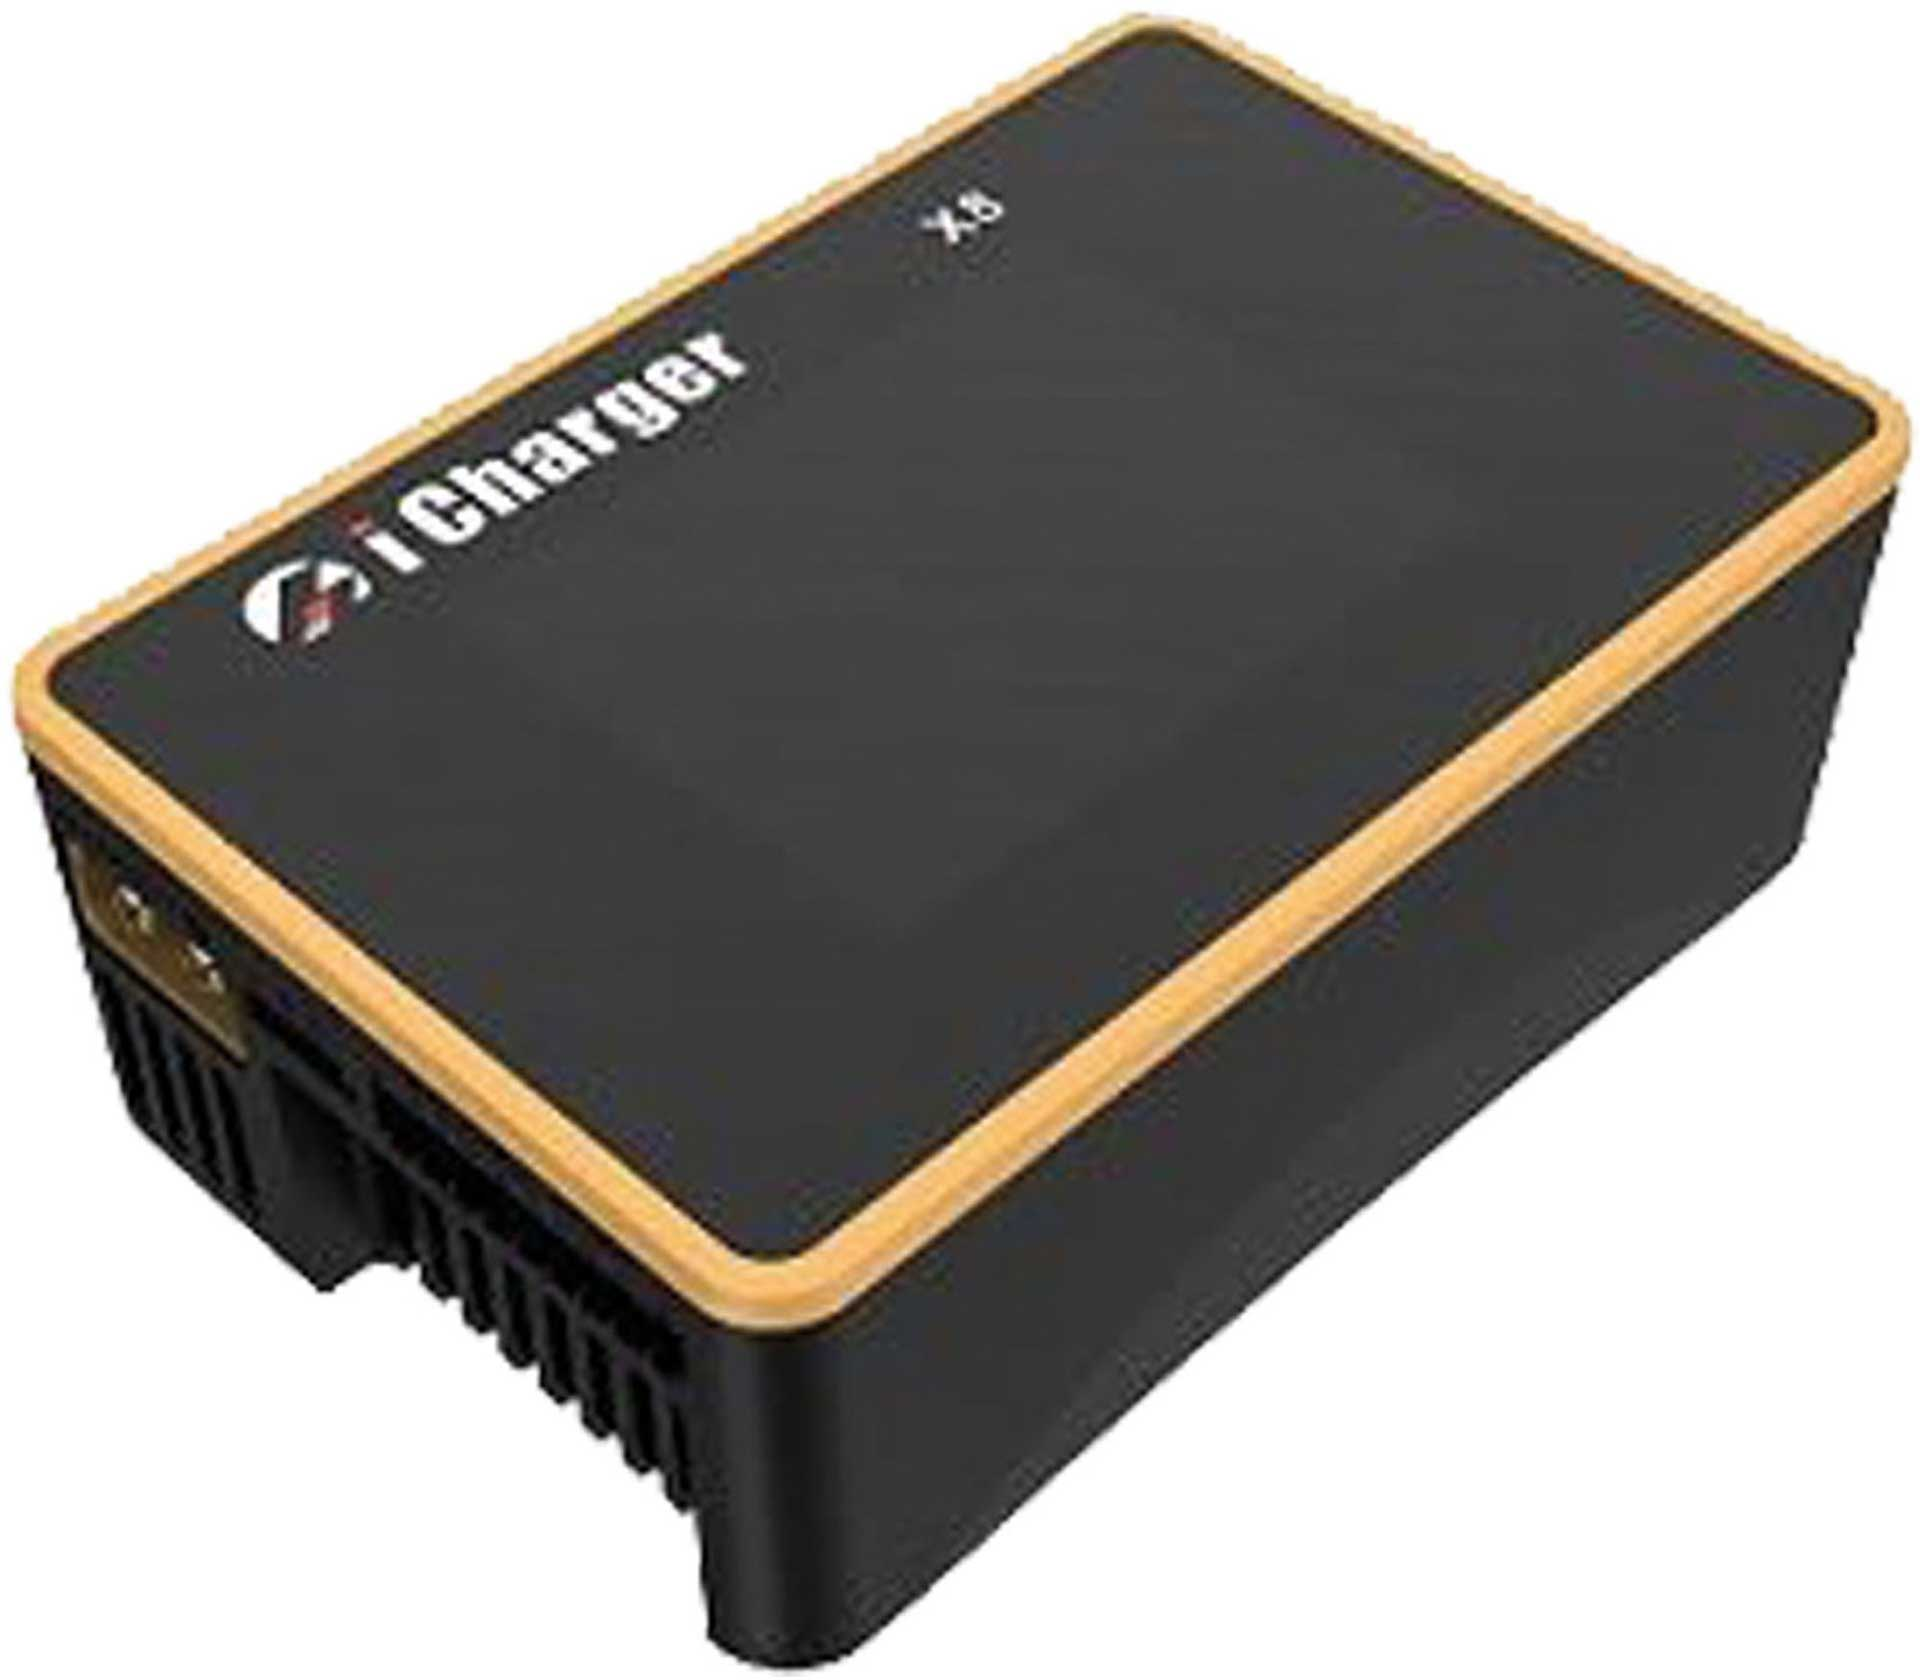 JUN-SI ICHARGER X8 1100W -8S CHARGER